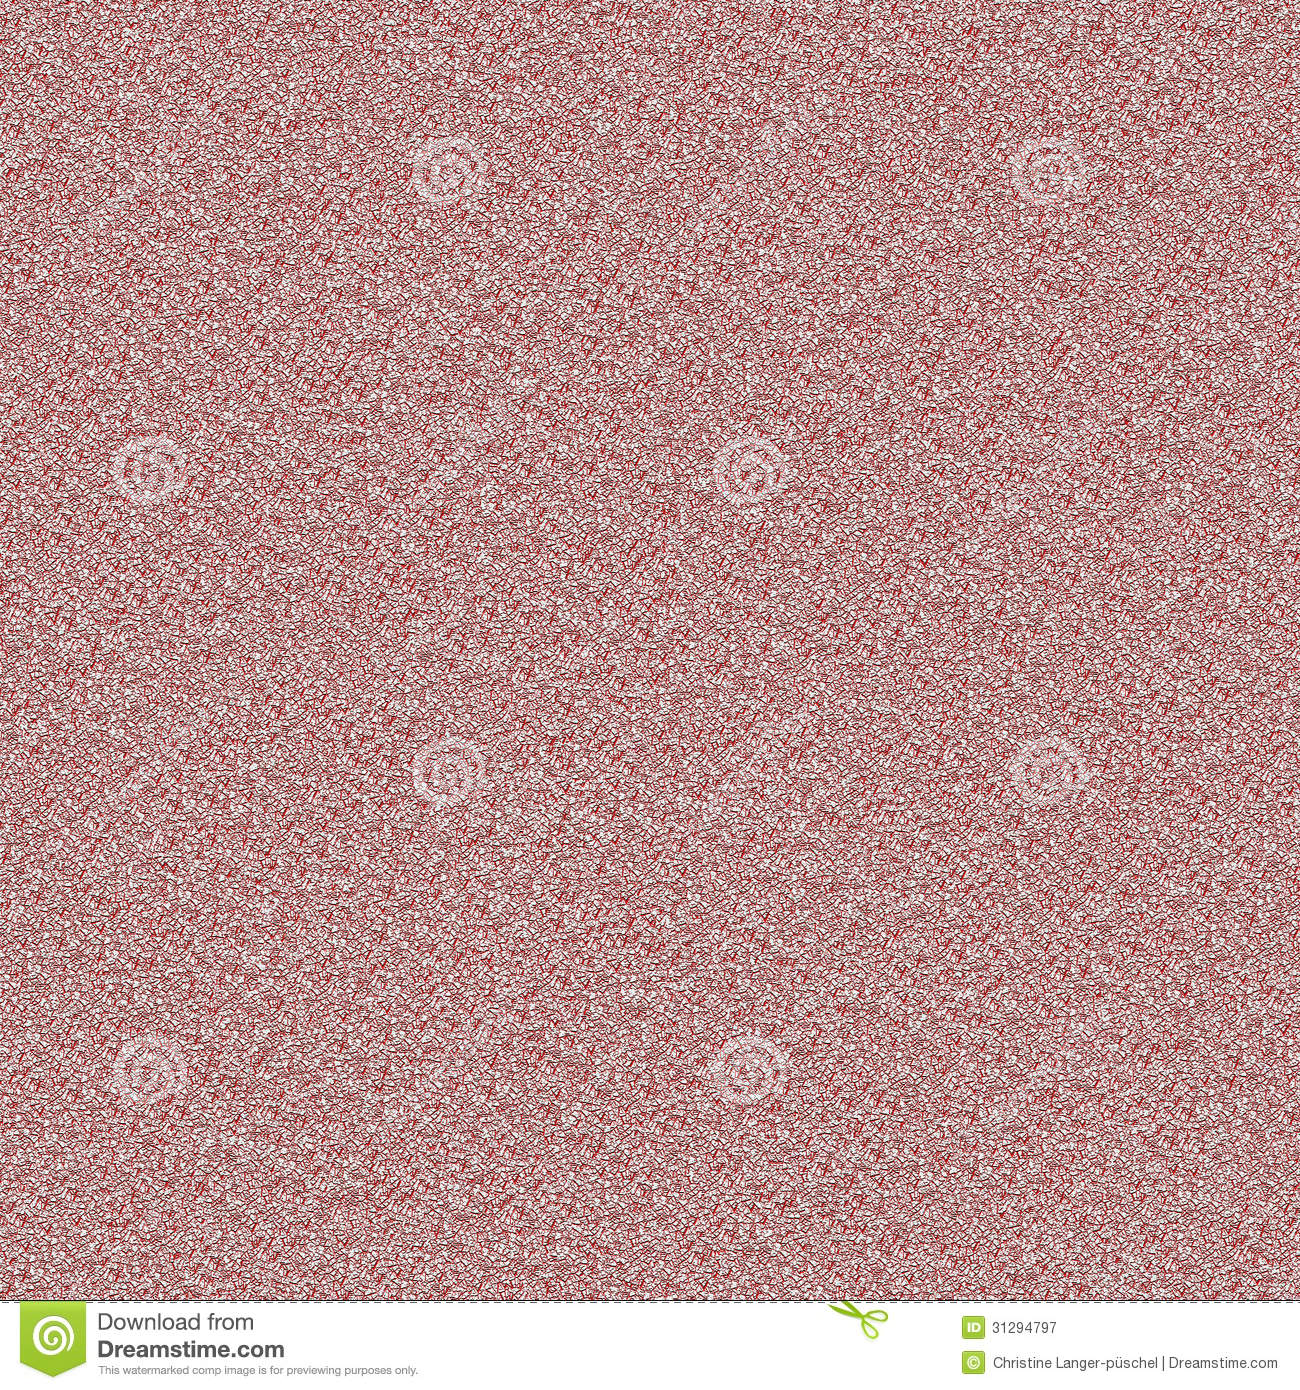 Pink Carpet Texture Royalty Free Stock Photography